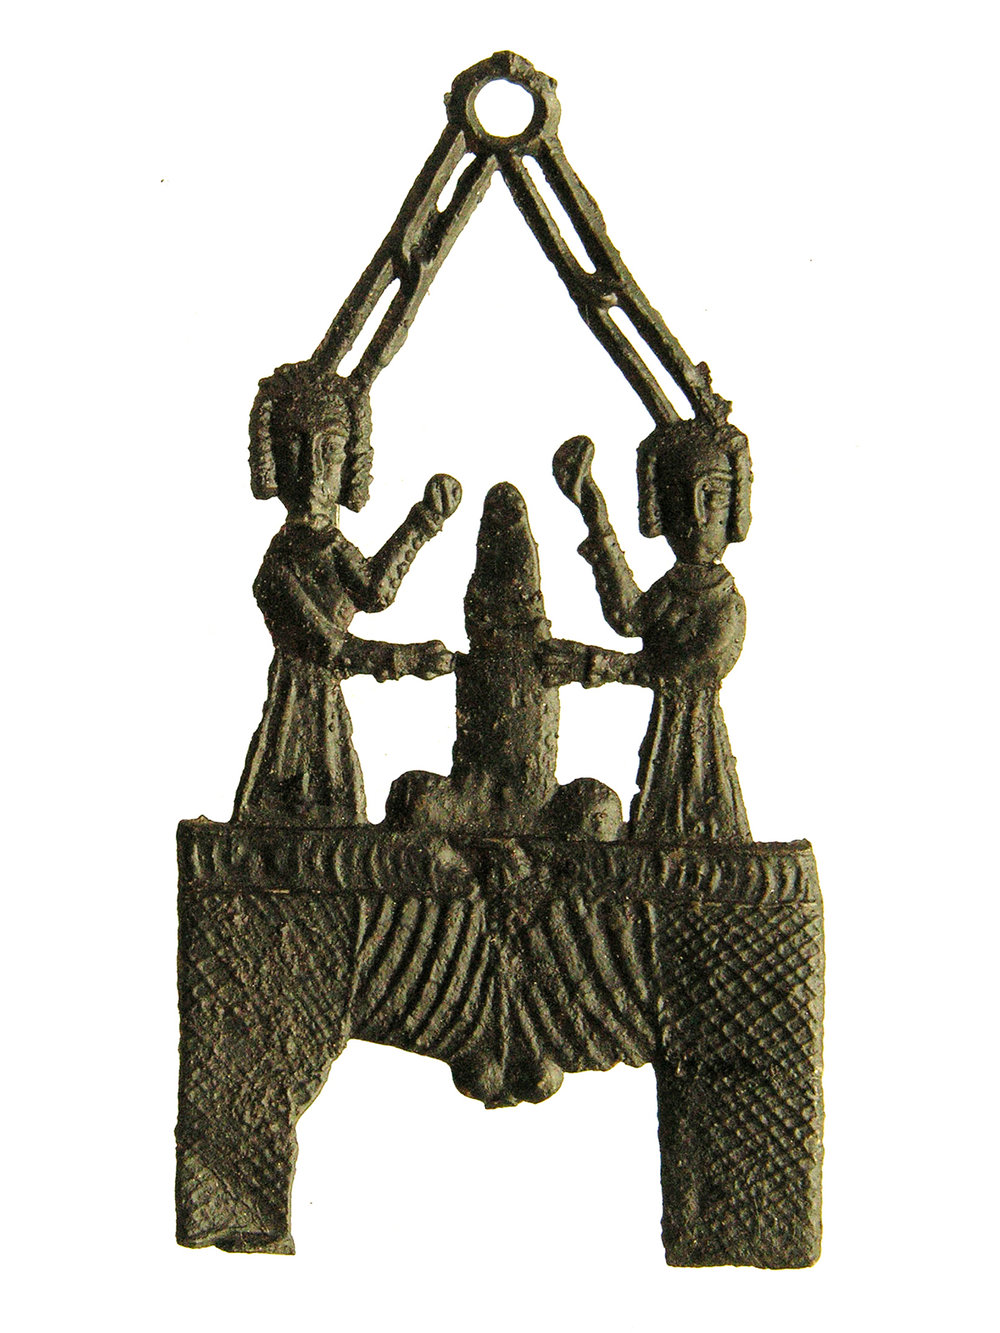 Fig. 1: Phallus protruding from trousers and stroked by two women, 1400-1450, 63 x 33 mm, found in Bruges, Van Beuningen family collection, Langbroek